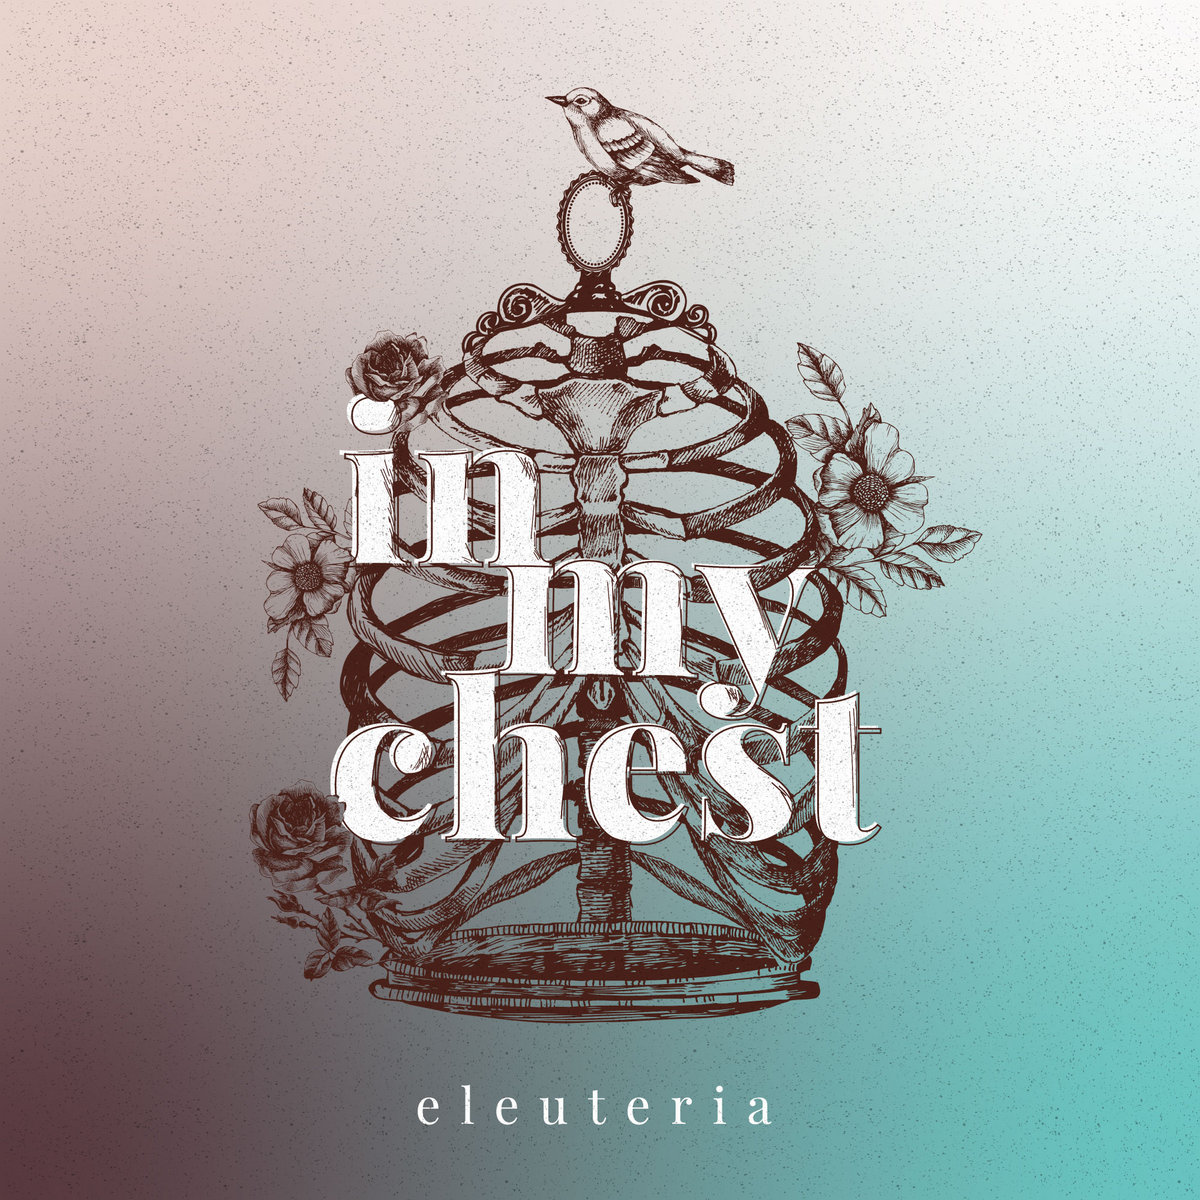 Eleuteria – In My Chest